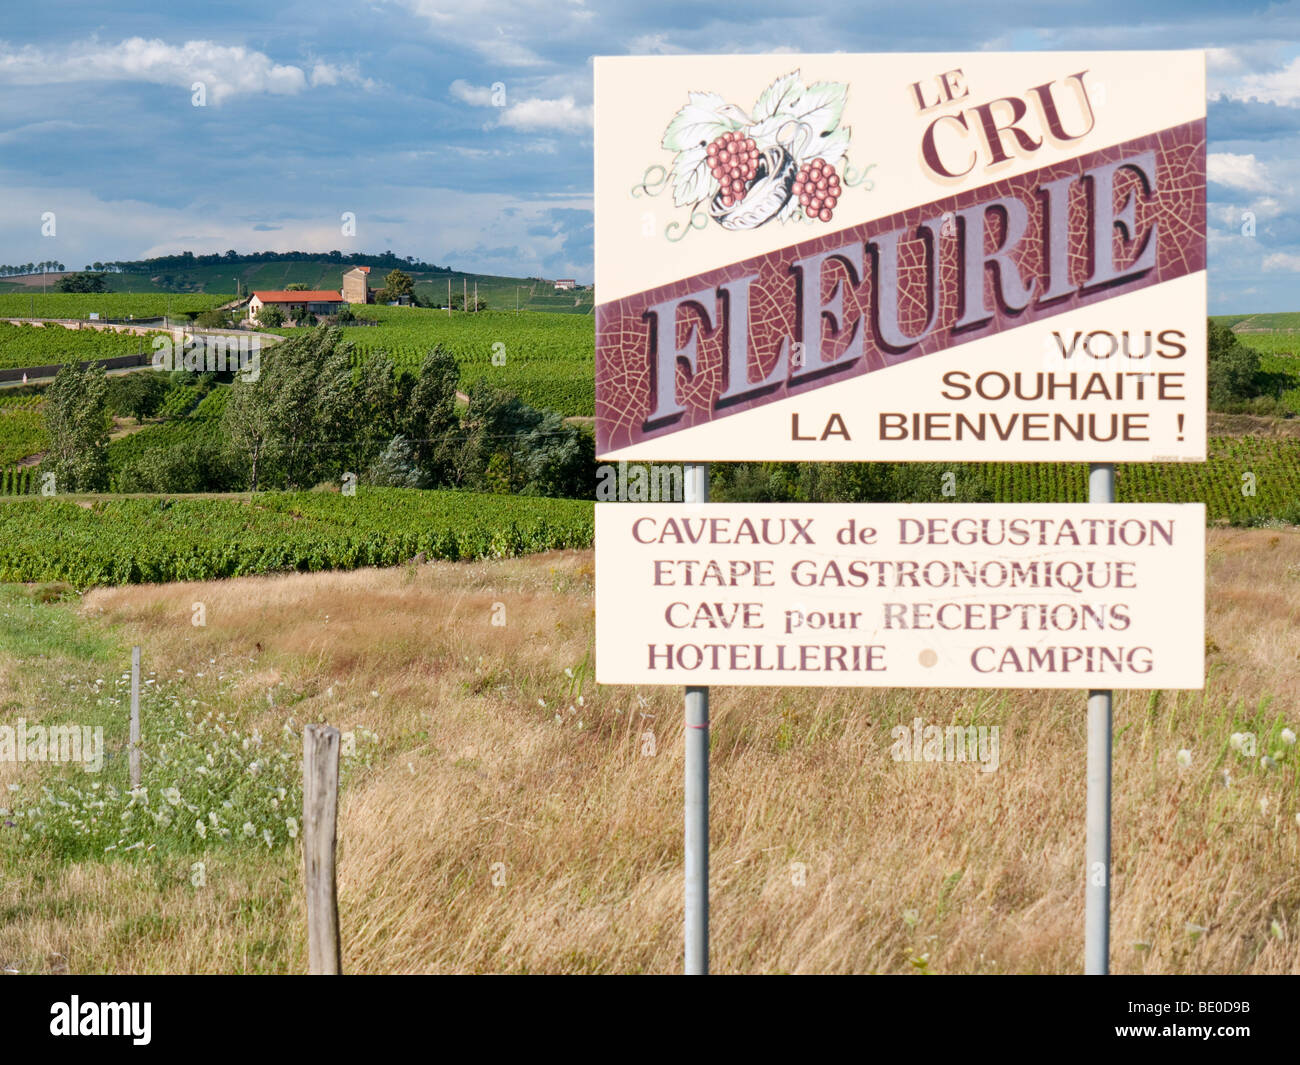 A signboard at the roadside advertises the renowned Beaujolais wine of Fleurie. - Stock Image